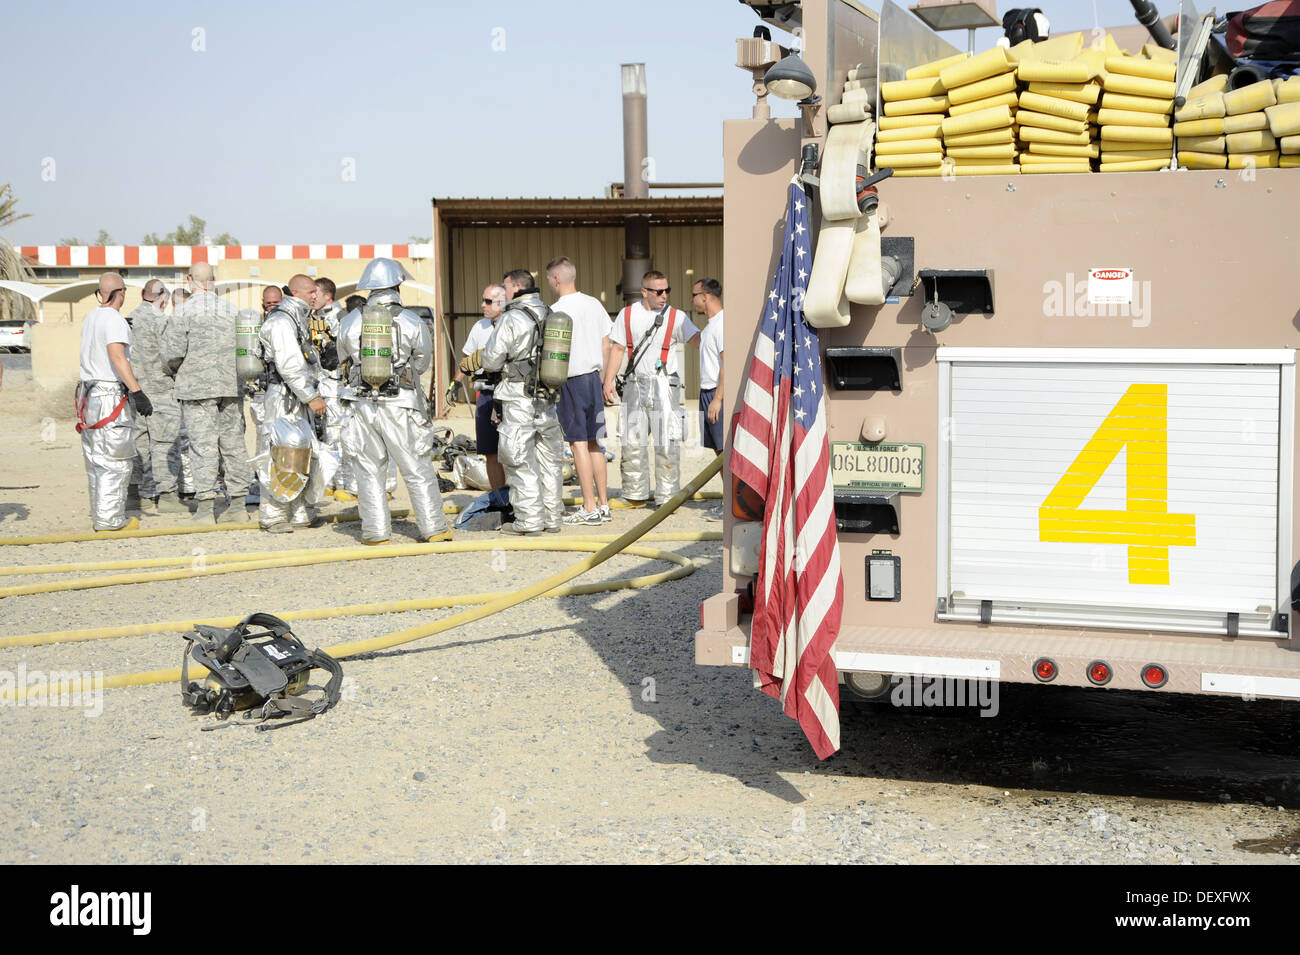 Members of the 386th Air Expeditionary Wing group together to discuss what took place in the shipping container here, Sept. 16, - Stock Image